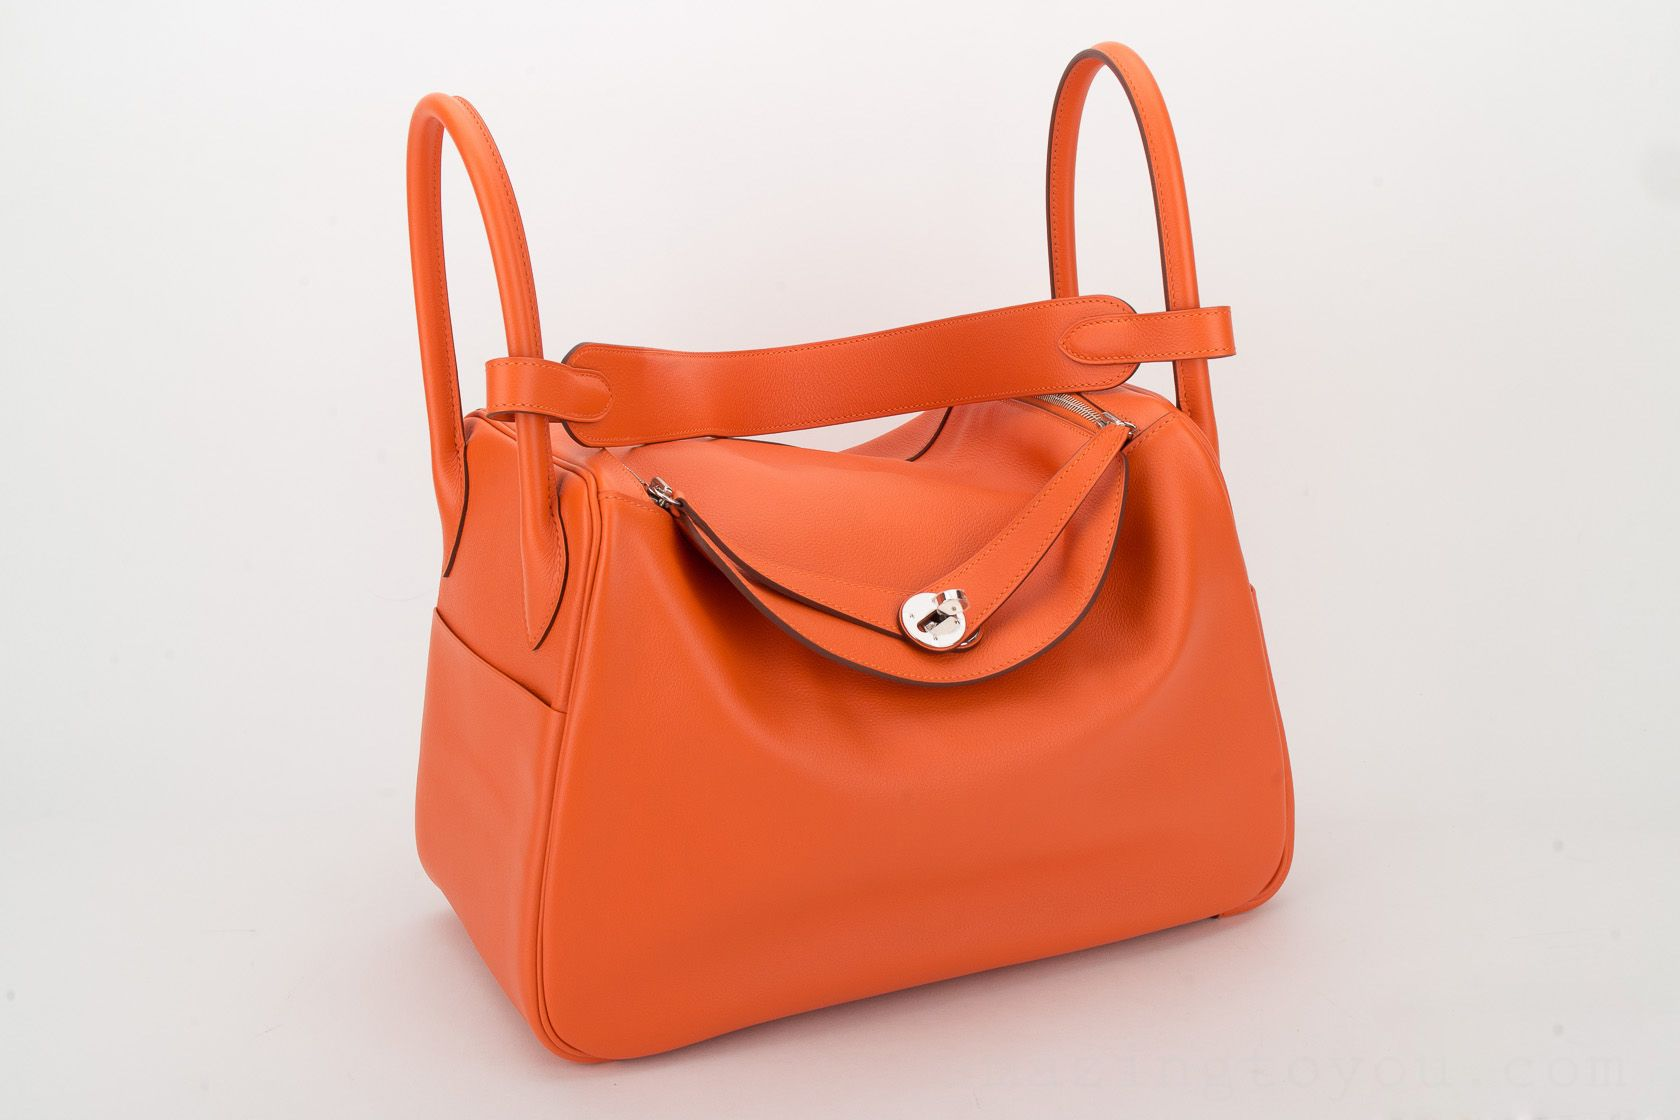 Hermes Lindy Bag Price